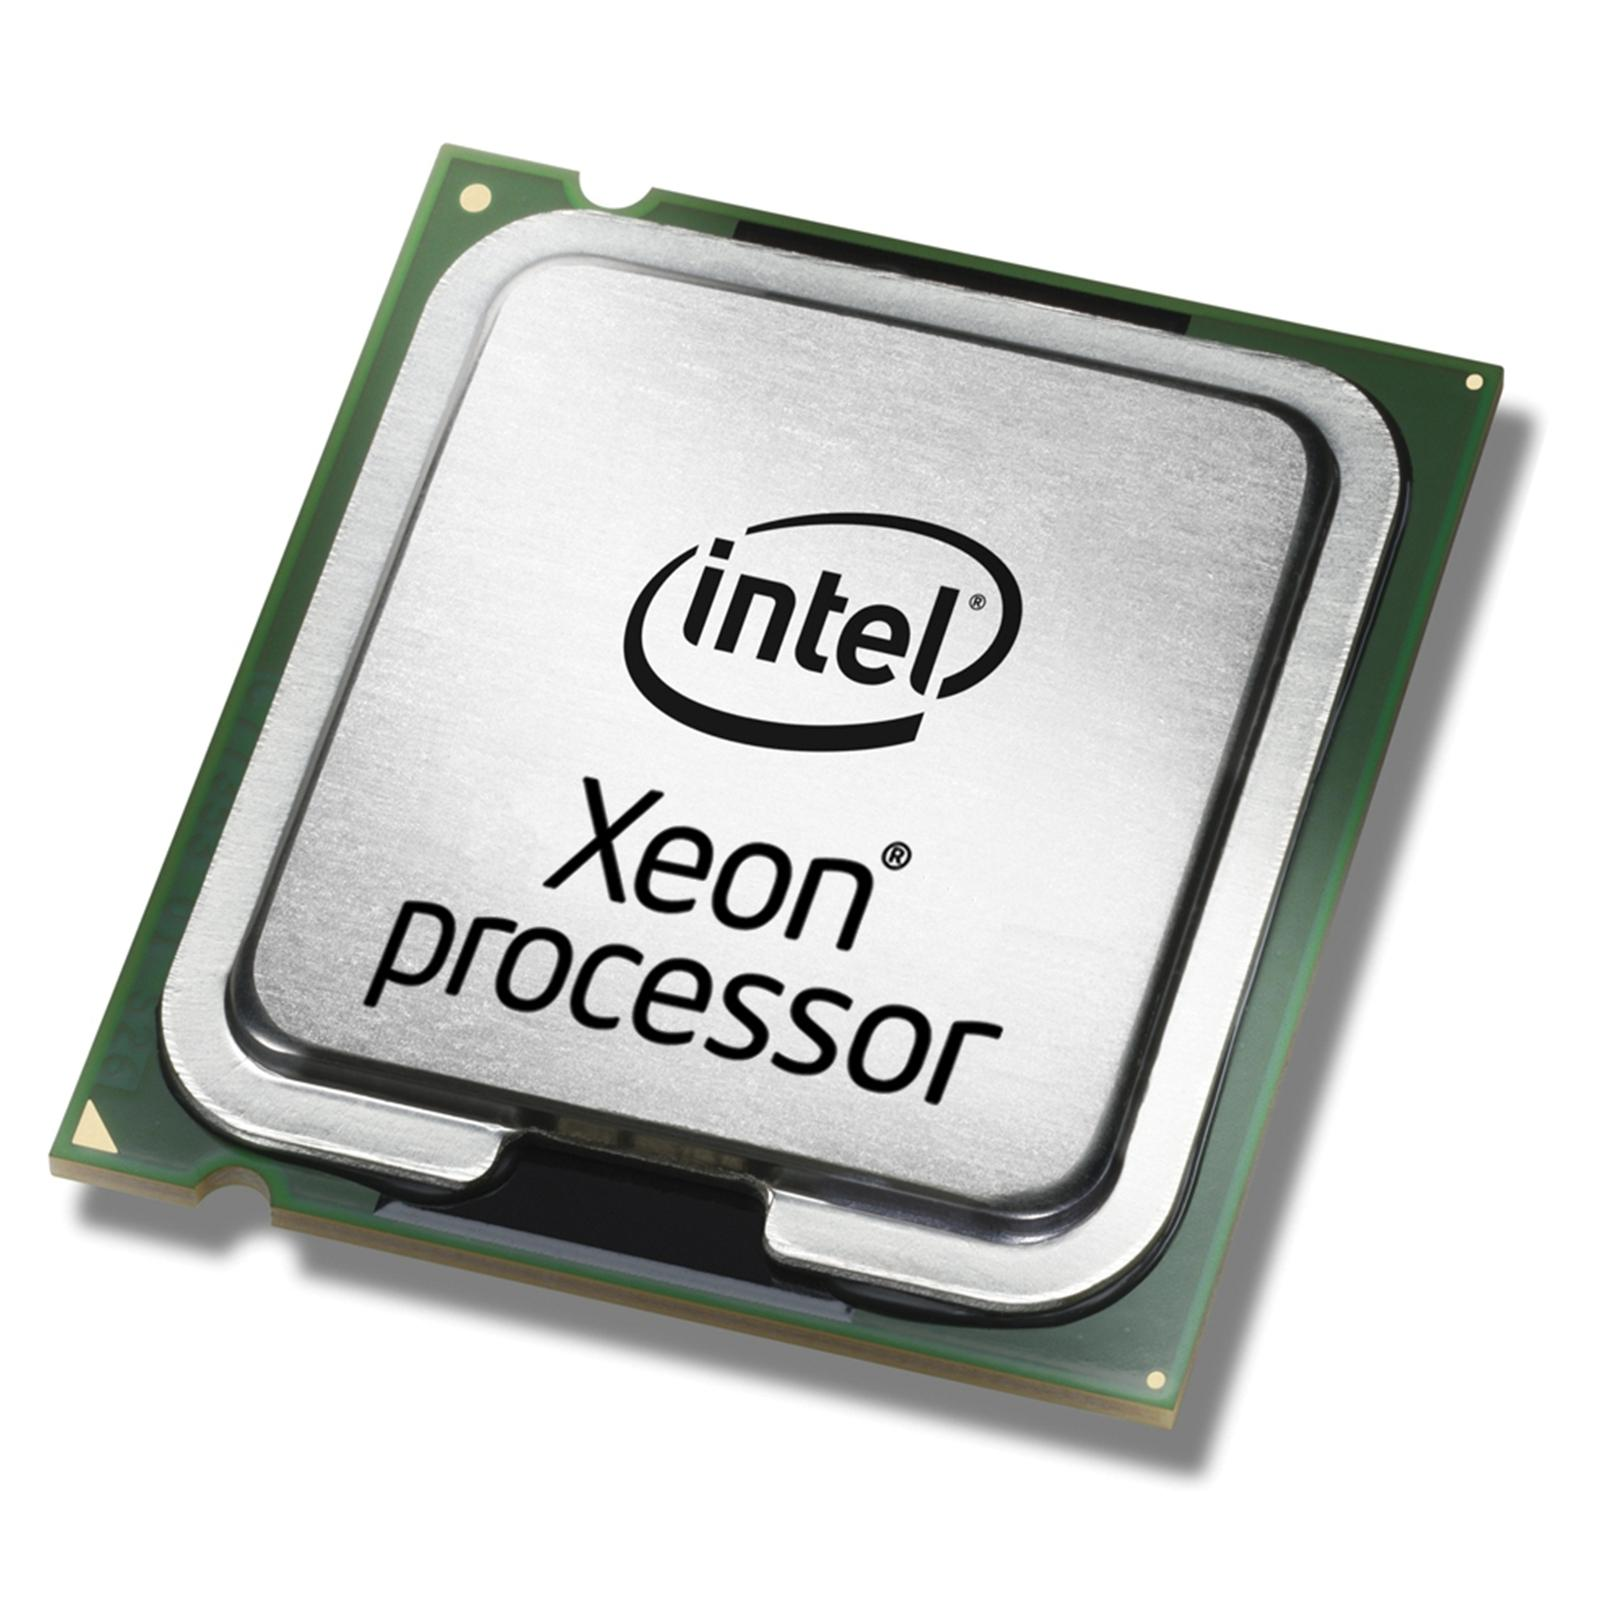 Intel® Xeon® Processor E5-2620 v2 6C 2.1GHz 15MB Cache 1600MHz 80W